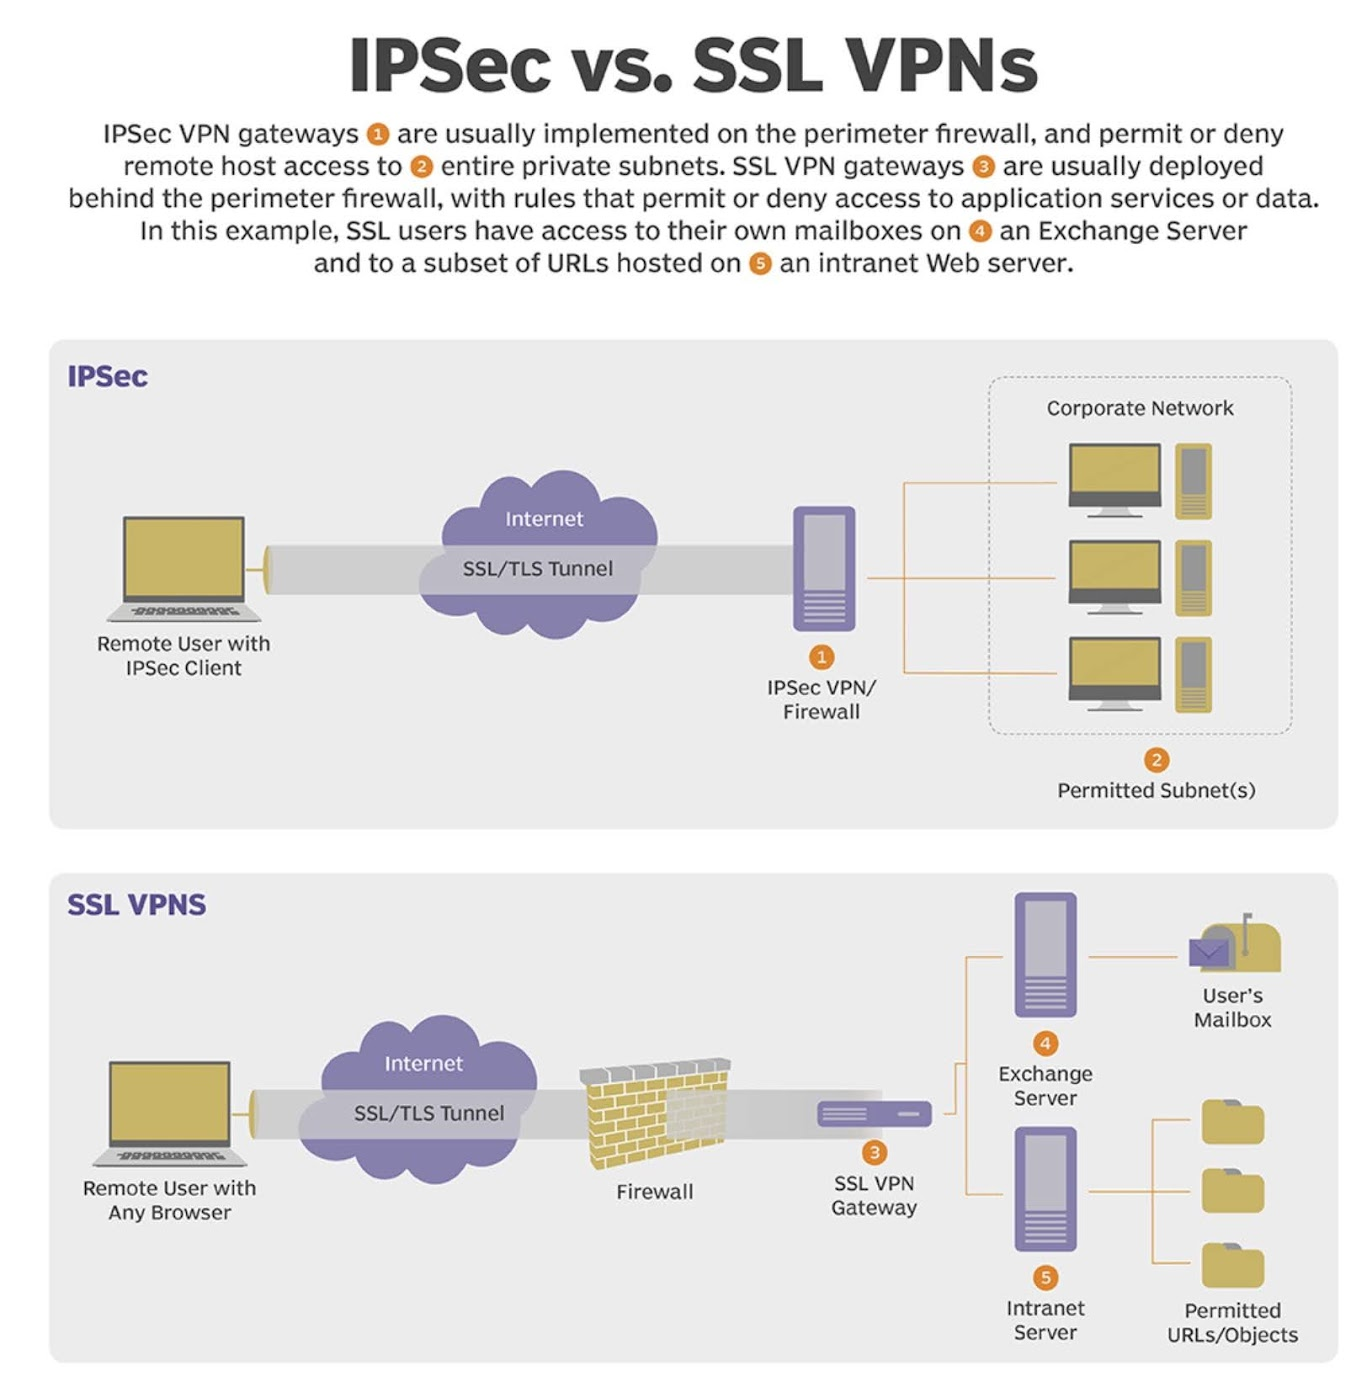 What are the differences between IPsec VPN and SSL VPN?